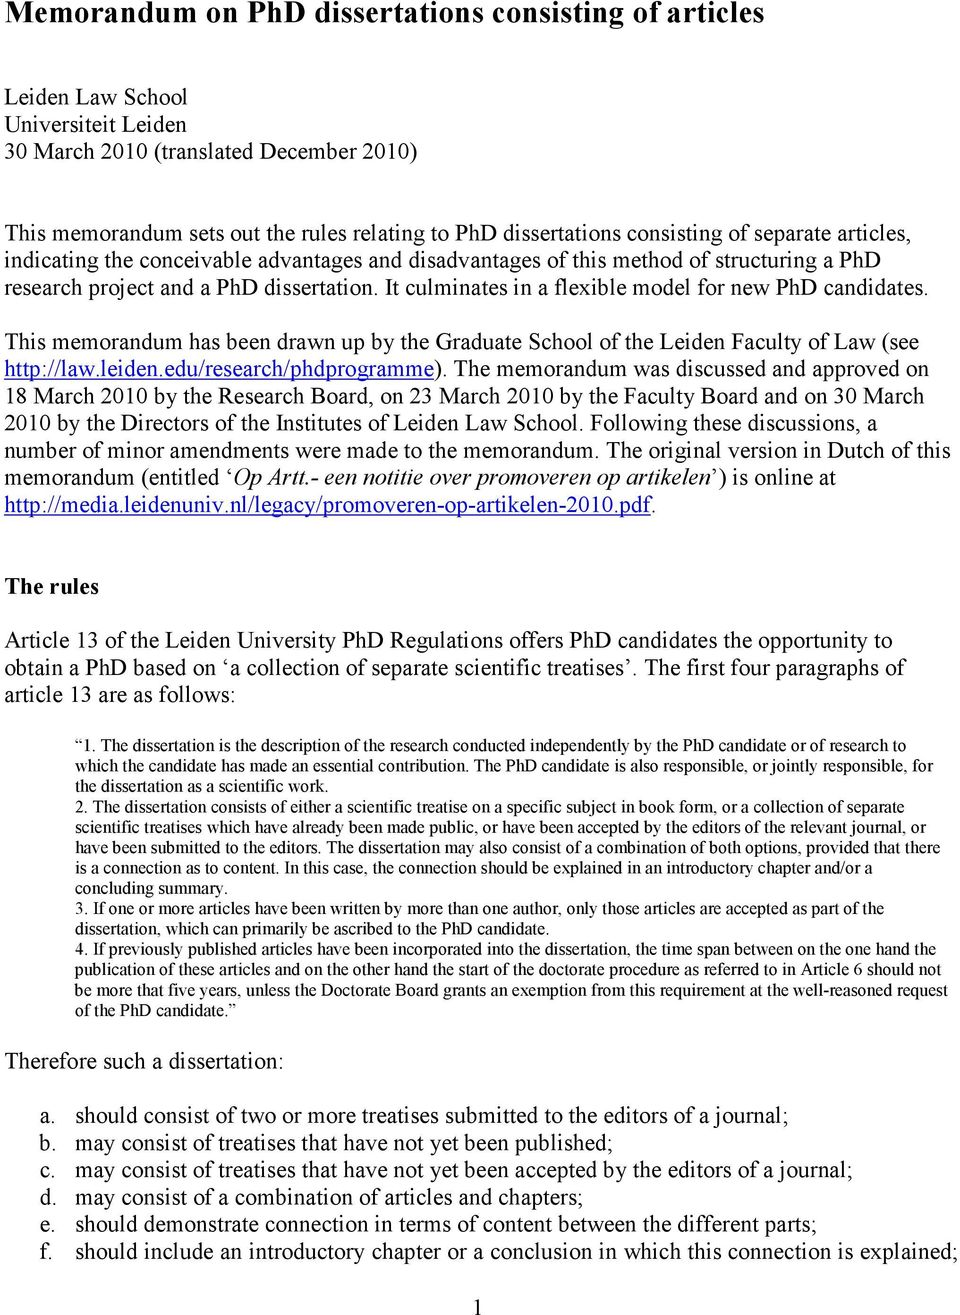 It culminates in a flexible model for new PhD candidates. This memorandum has been drawn up by the Graduate School of the Leiden Faculty of Law (see http://law.leiden.edu/research/phdprogramme).